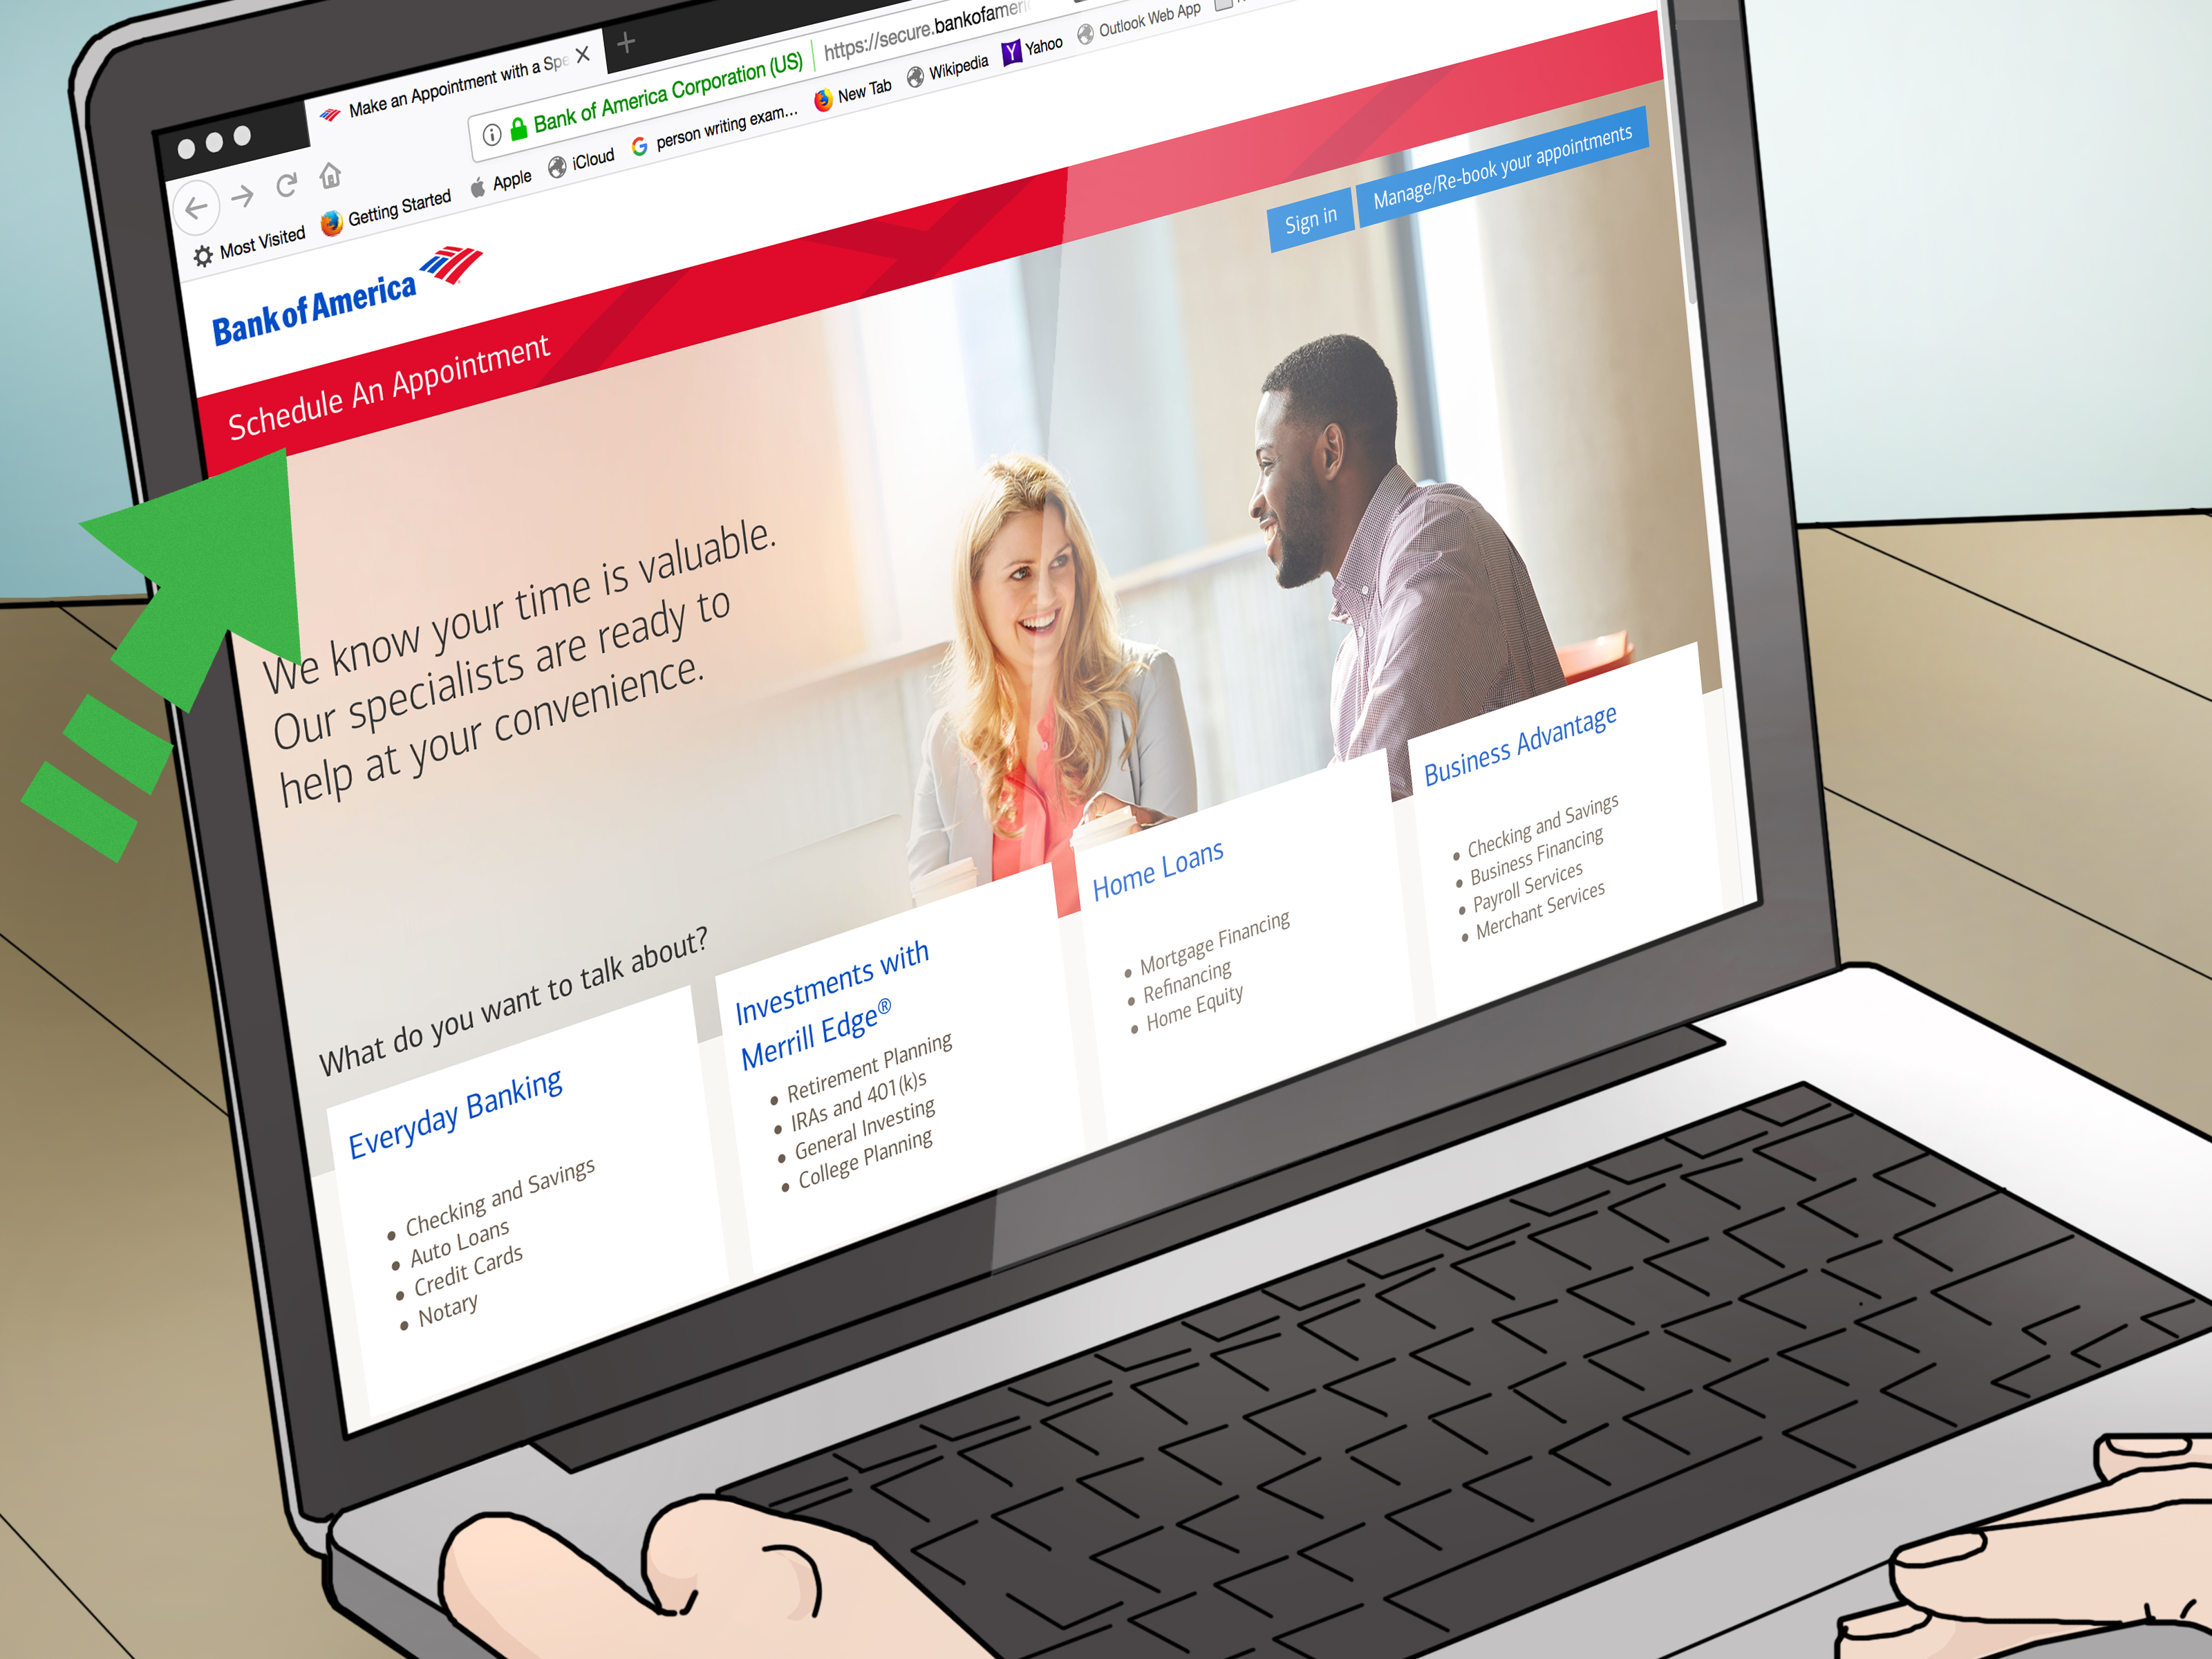 3 Ways To Contact Bank Of America Wikihow